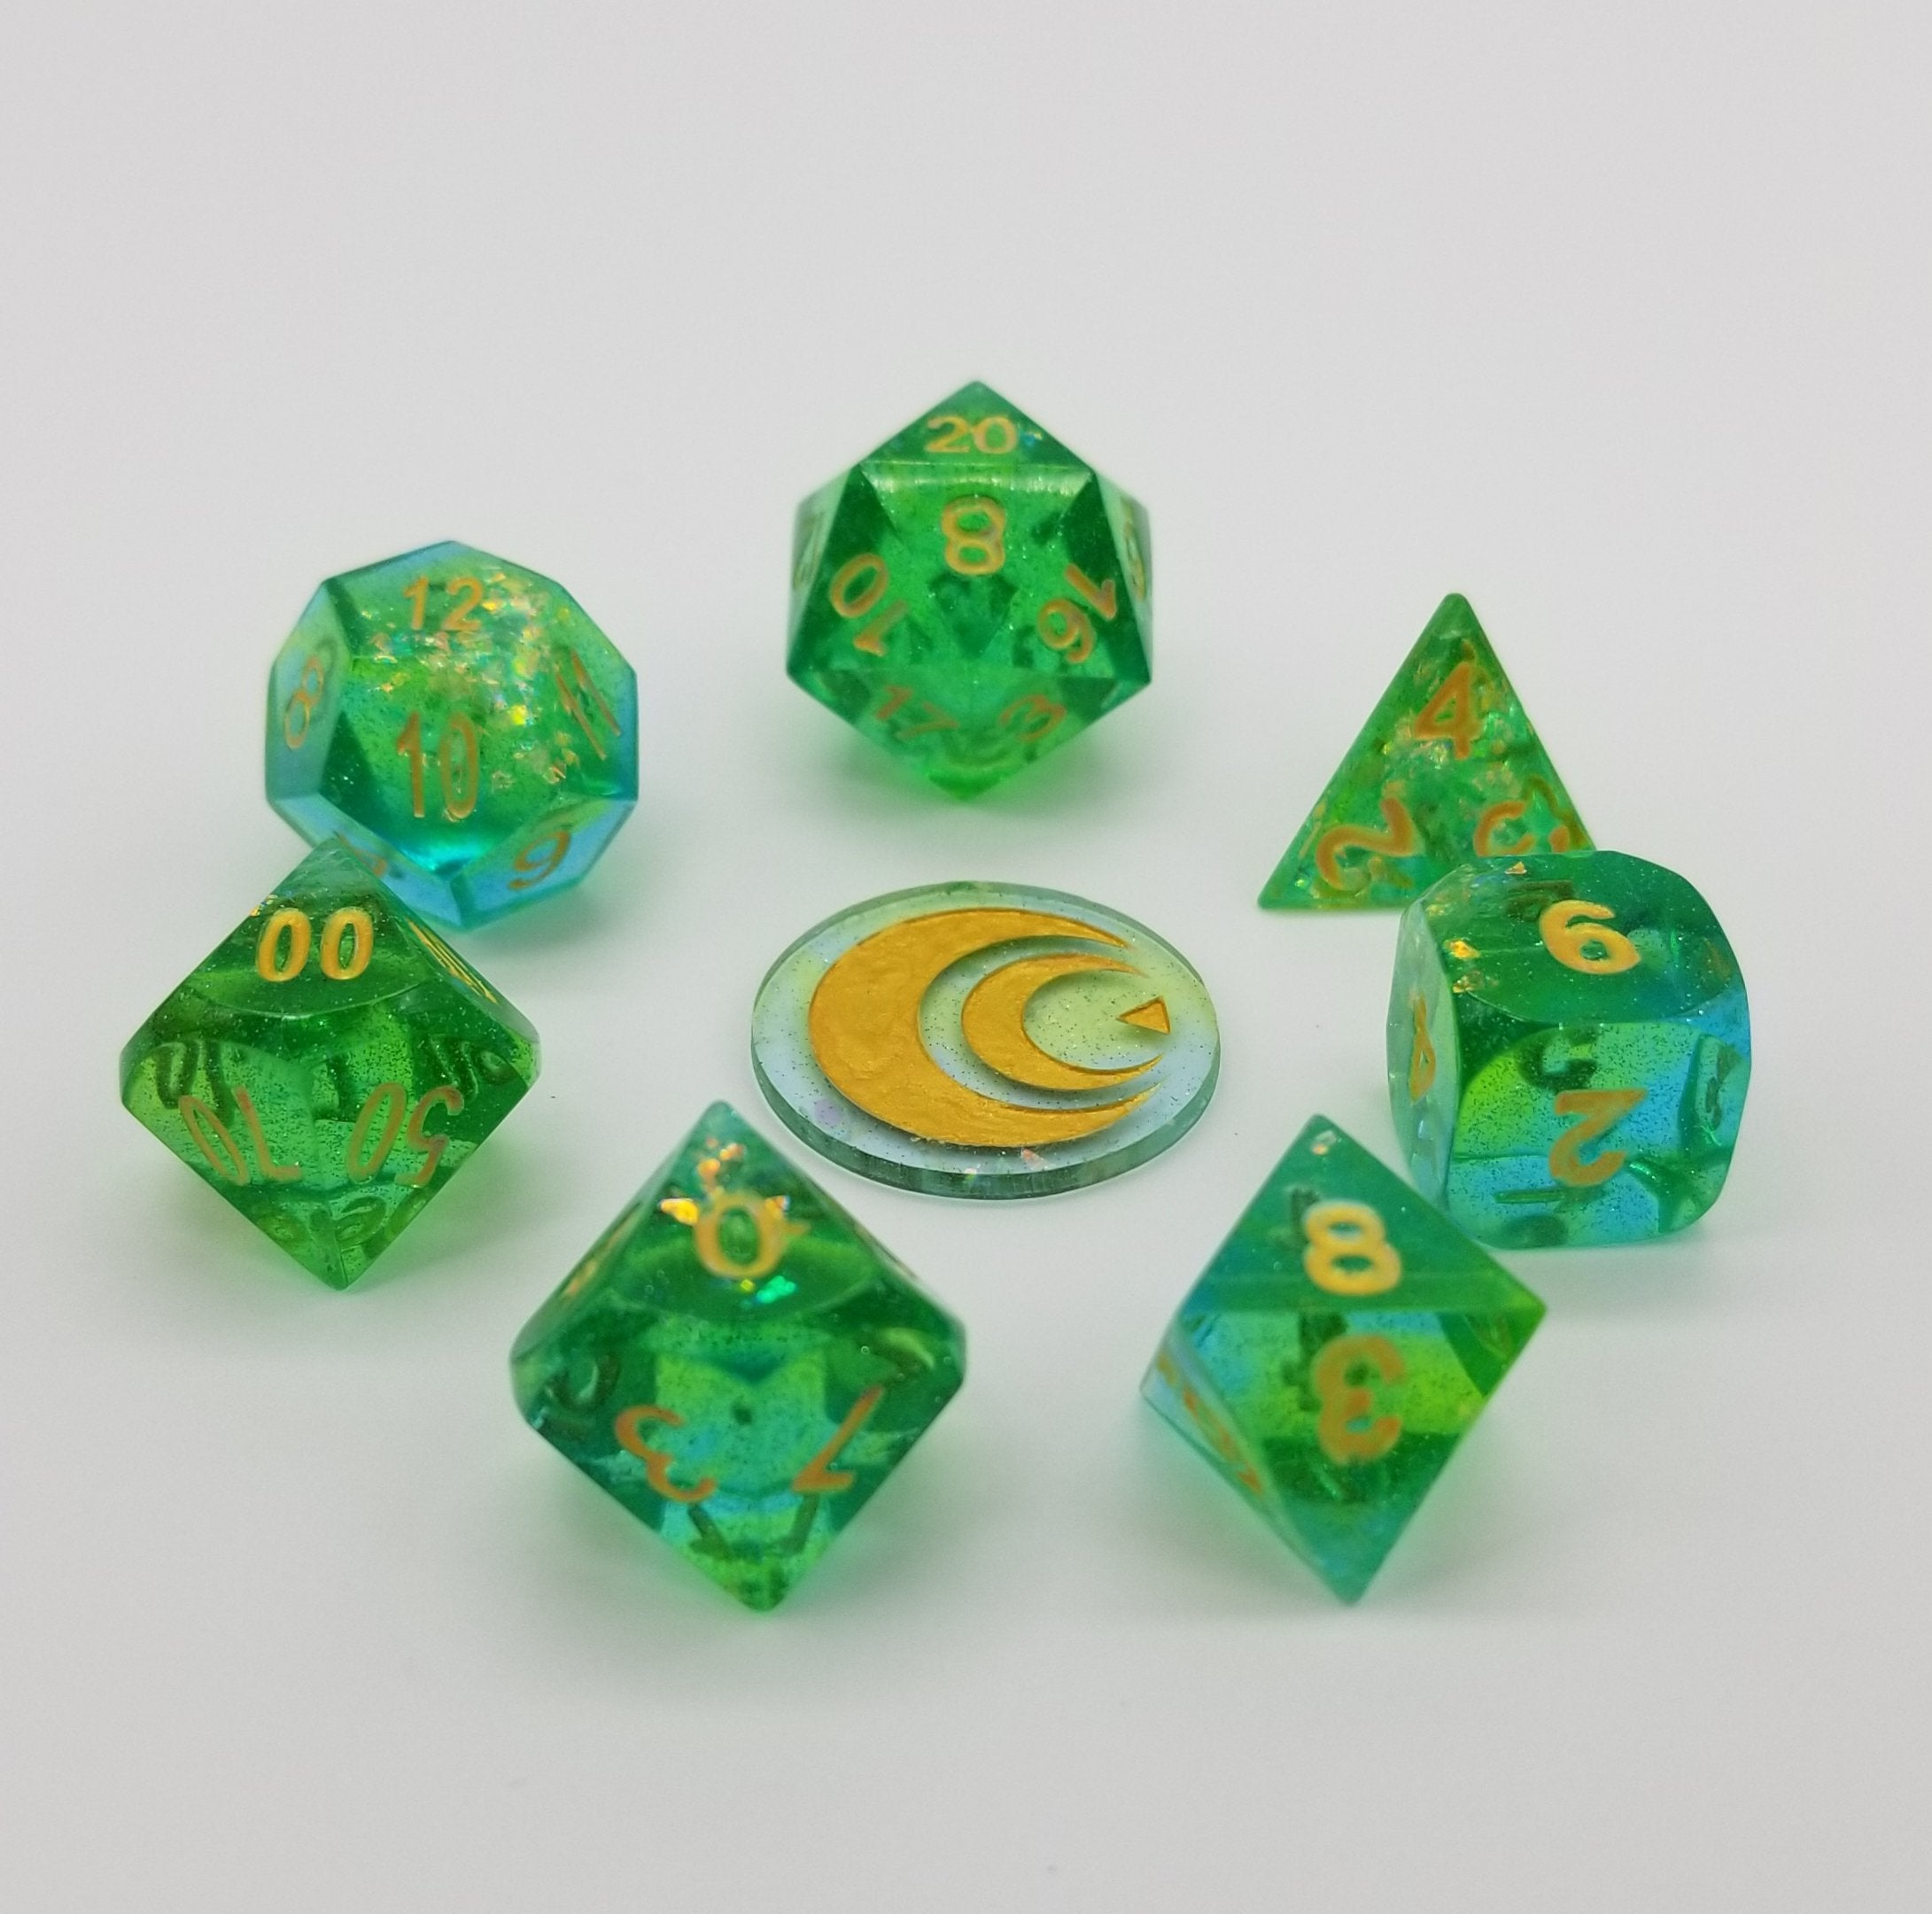 Transparent green handmade resin dice with incandescent Mylar flakes inside and gold ink.